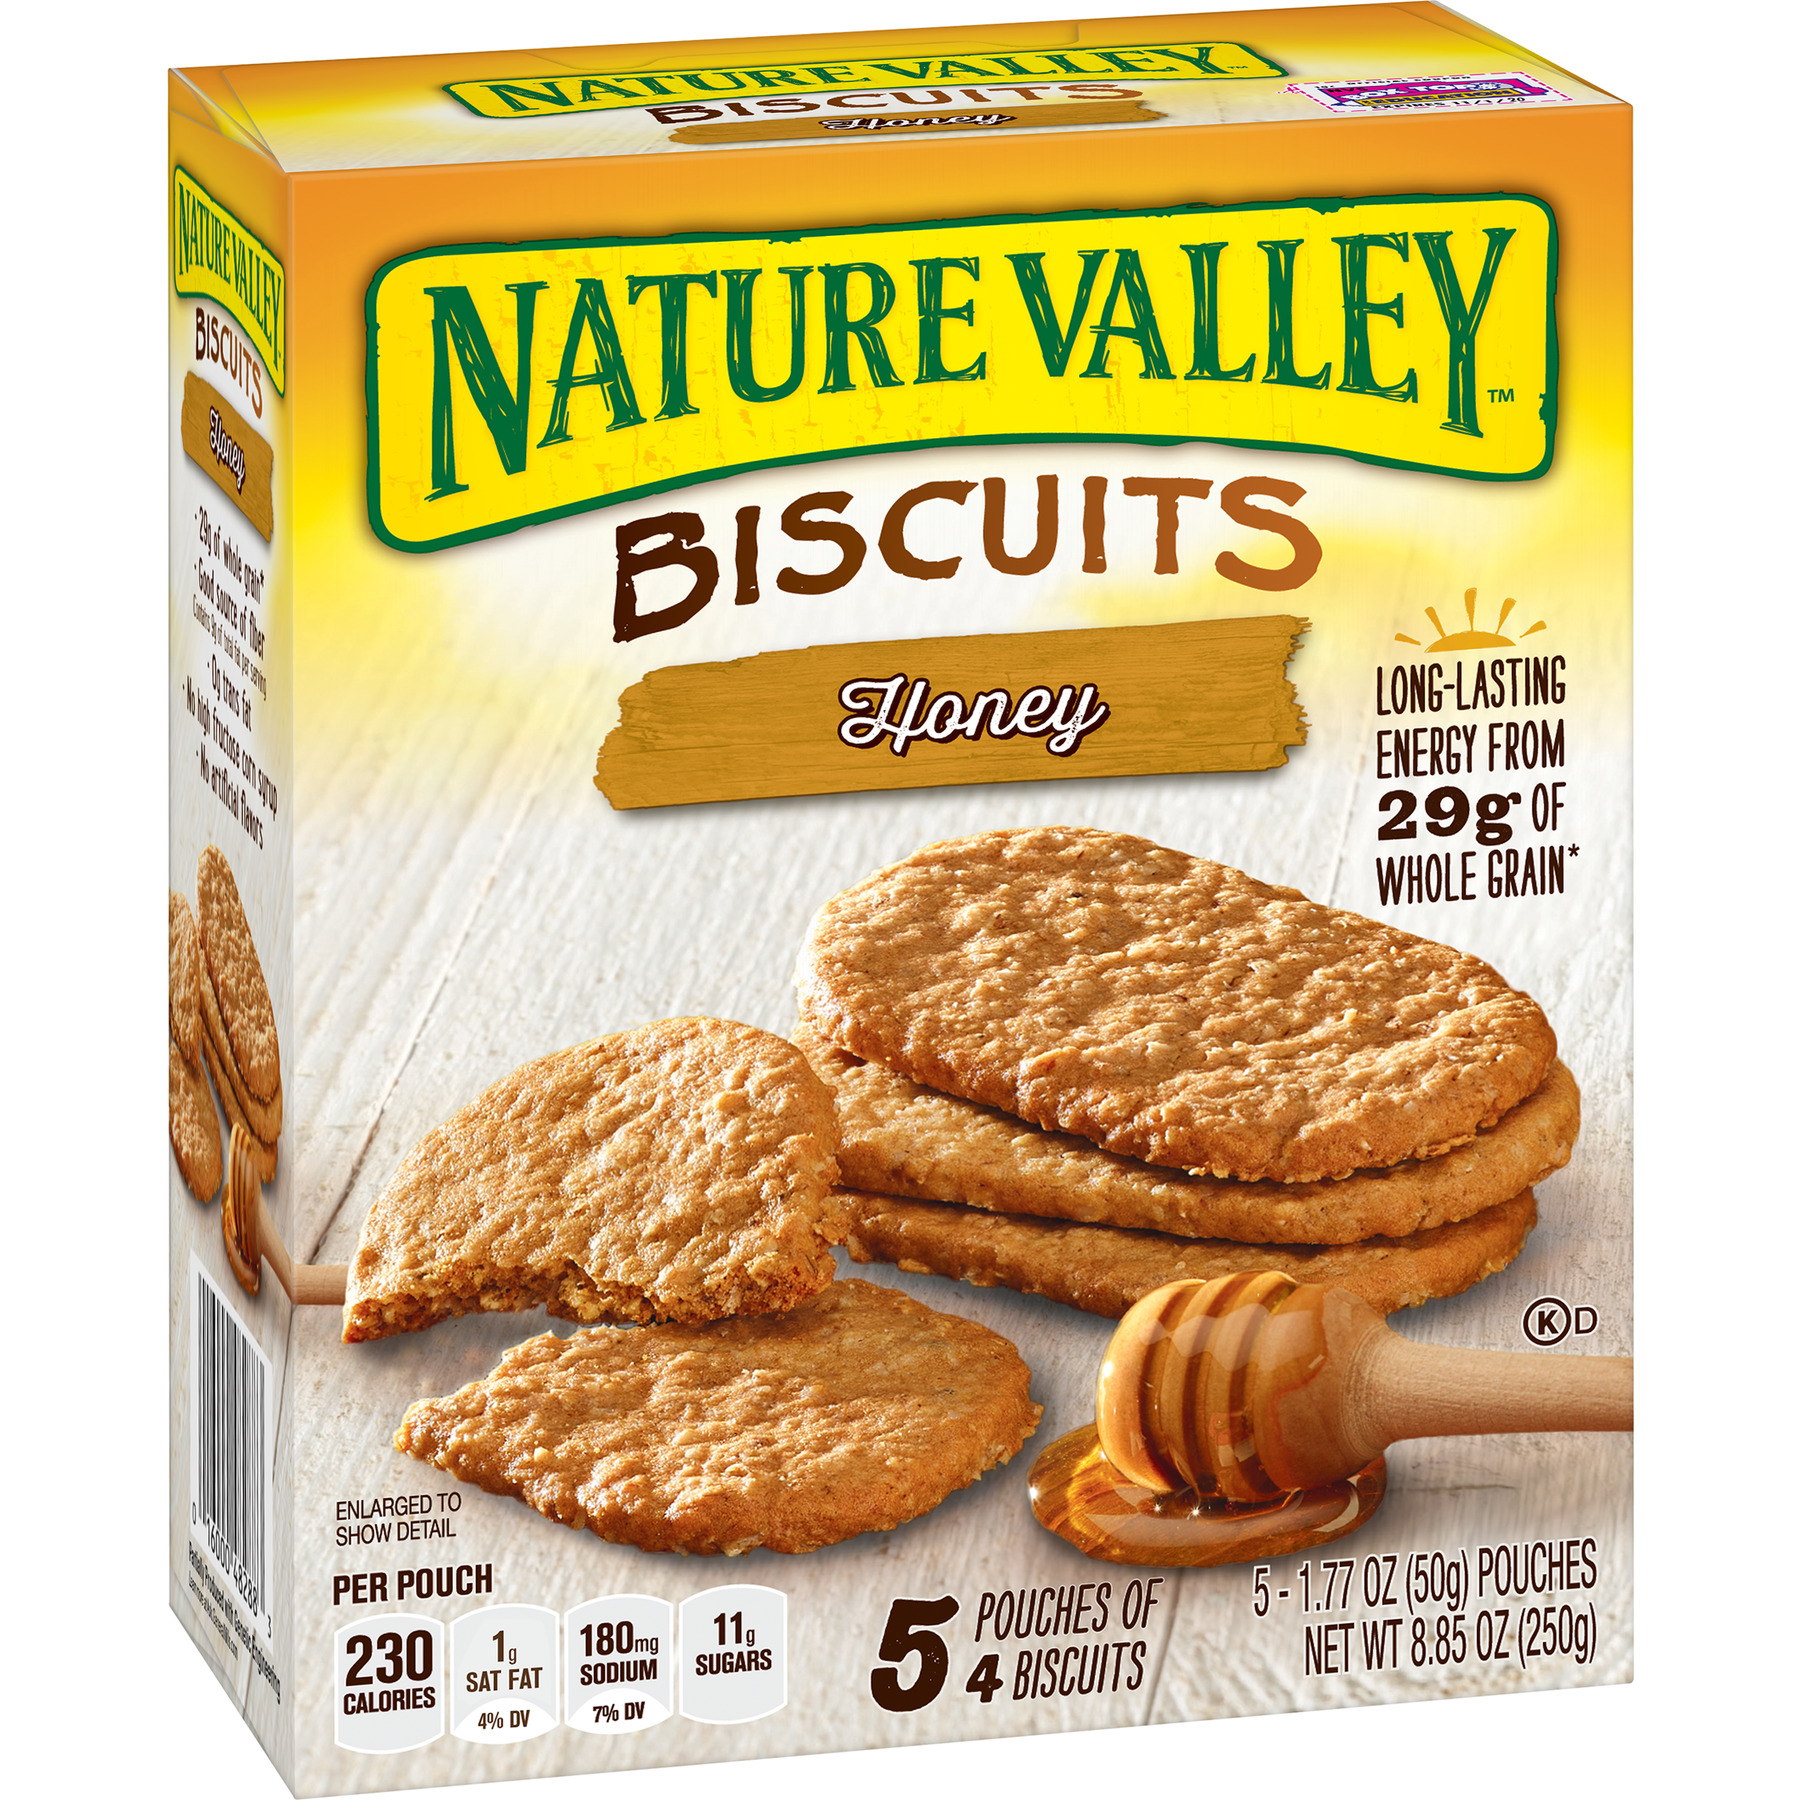 Nature Valley Breakfast Biscuits, Honey, 5 Pouches, 4-Bars Per Pouch